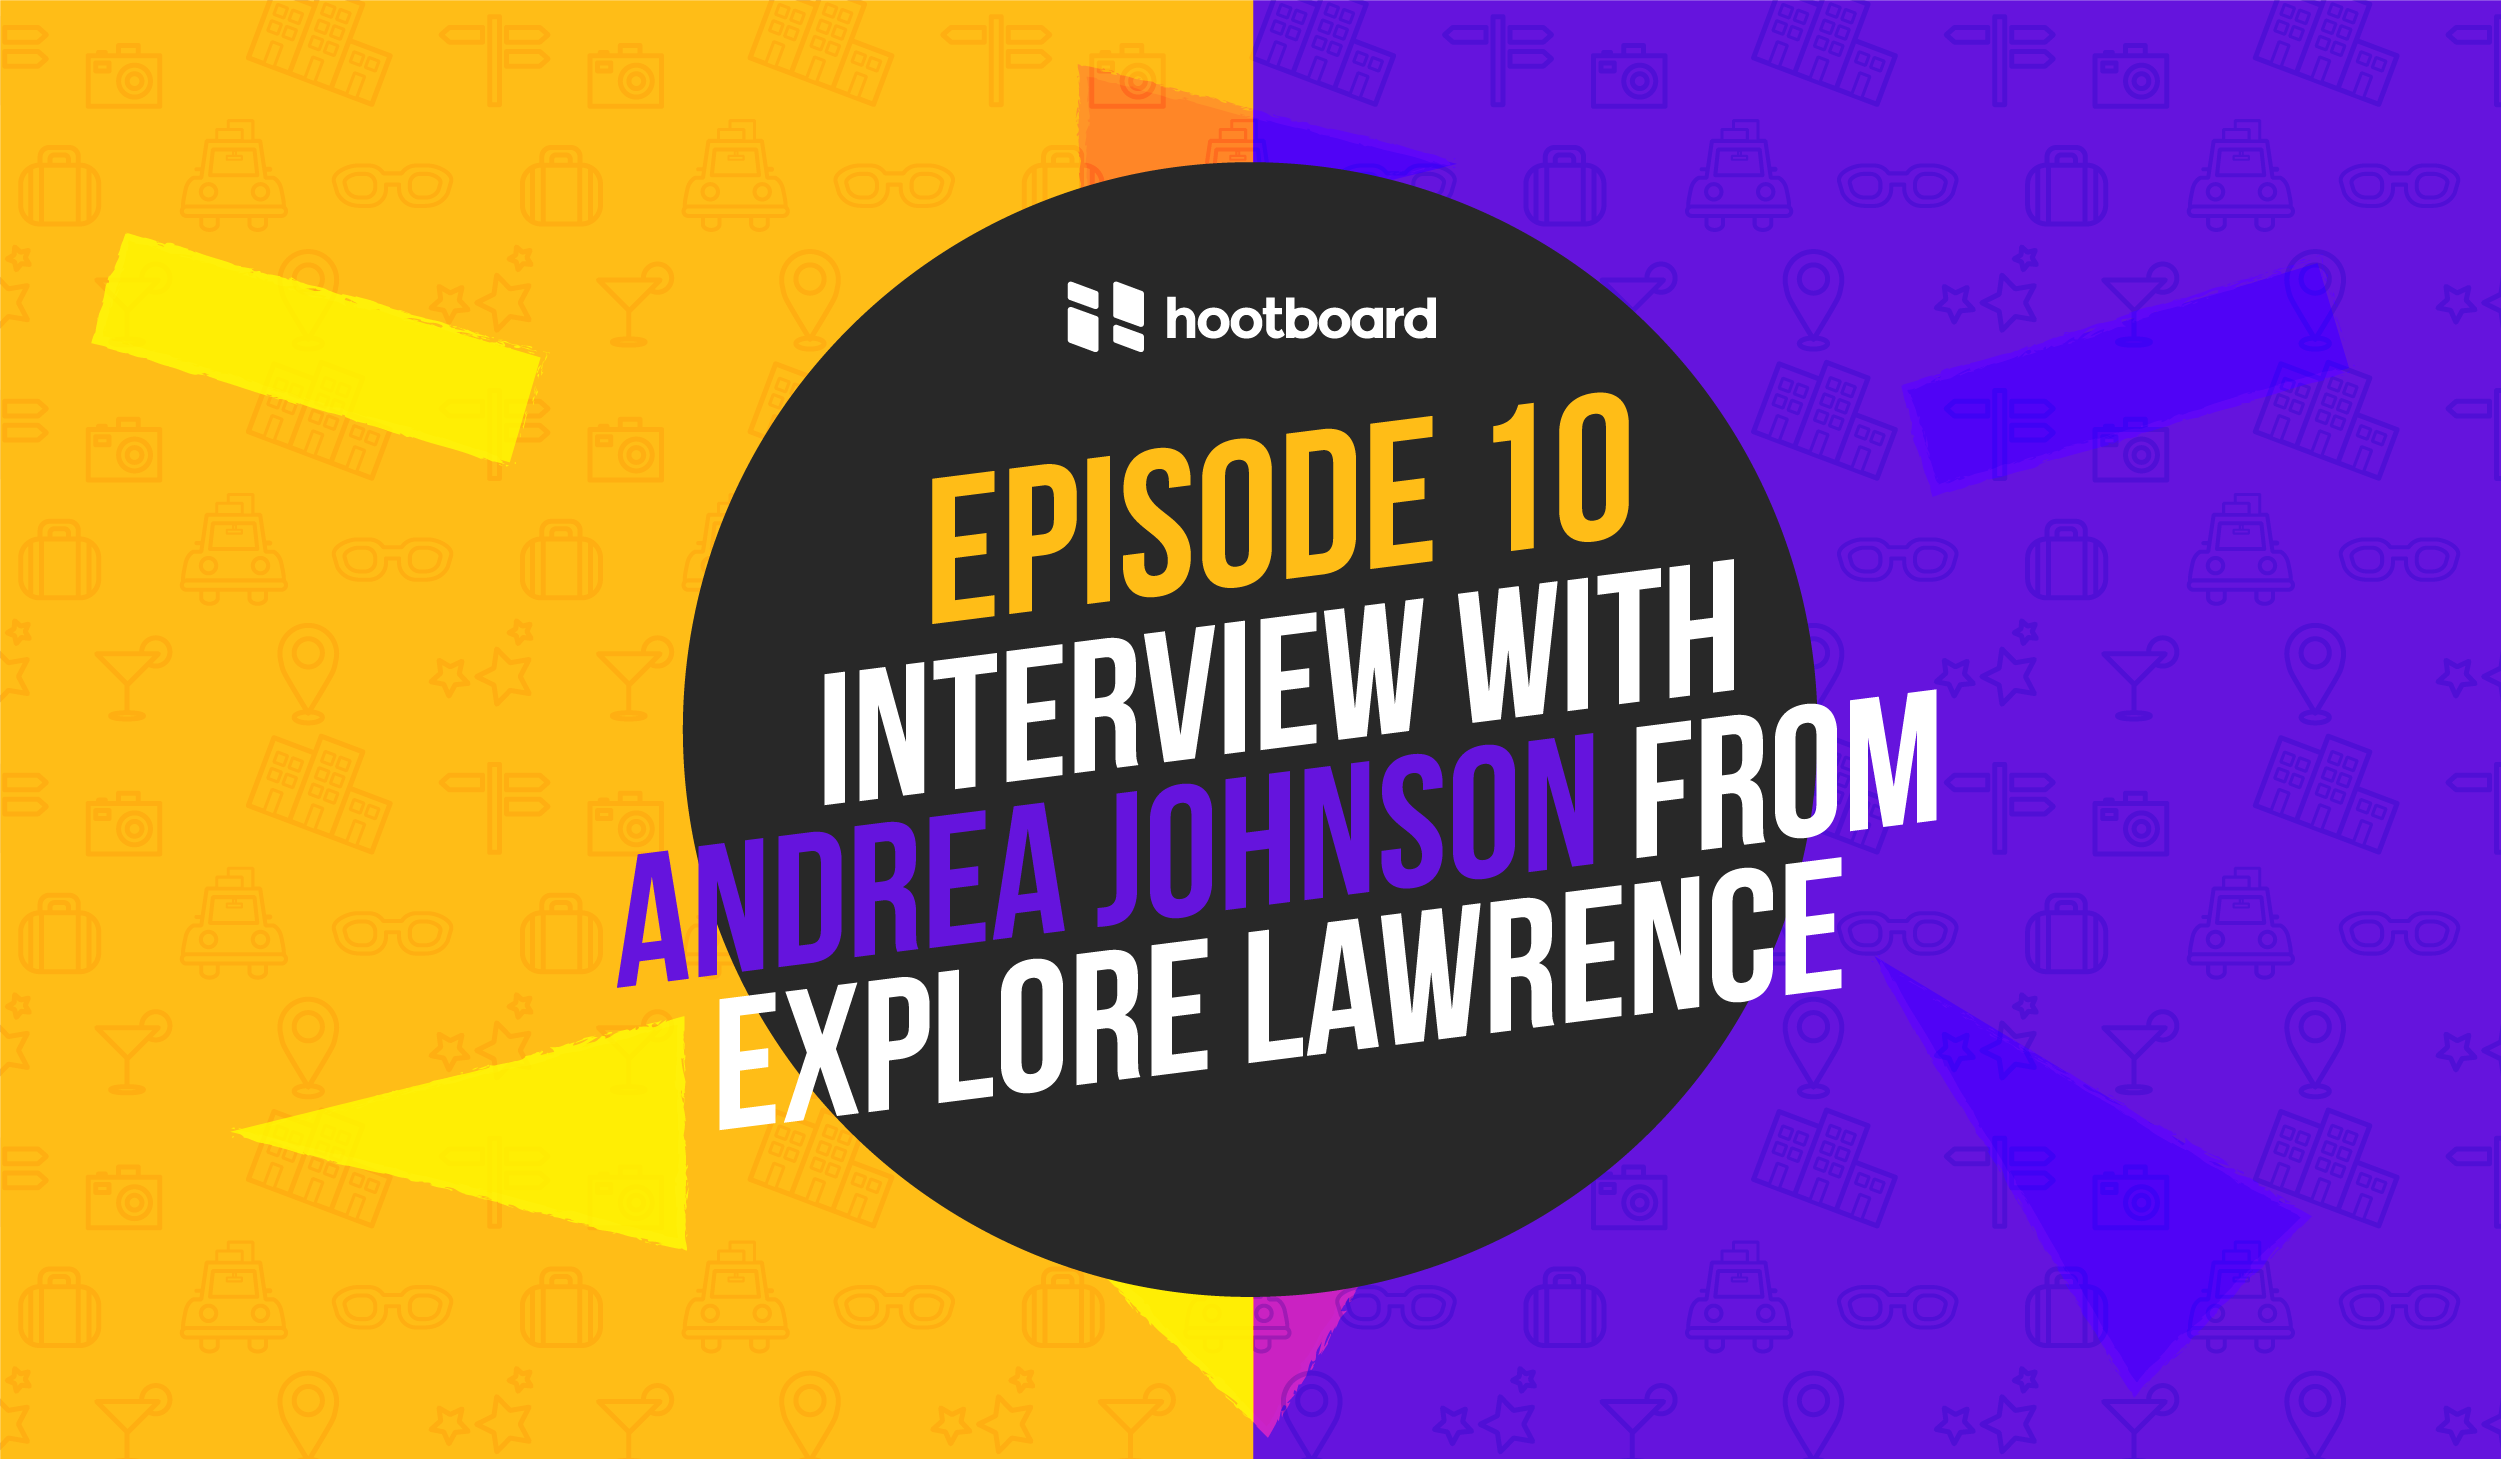 eXplore Lawrence Interview